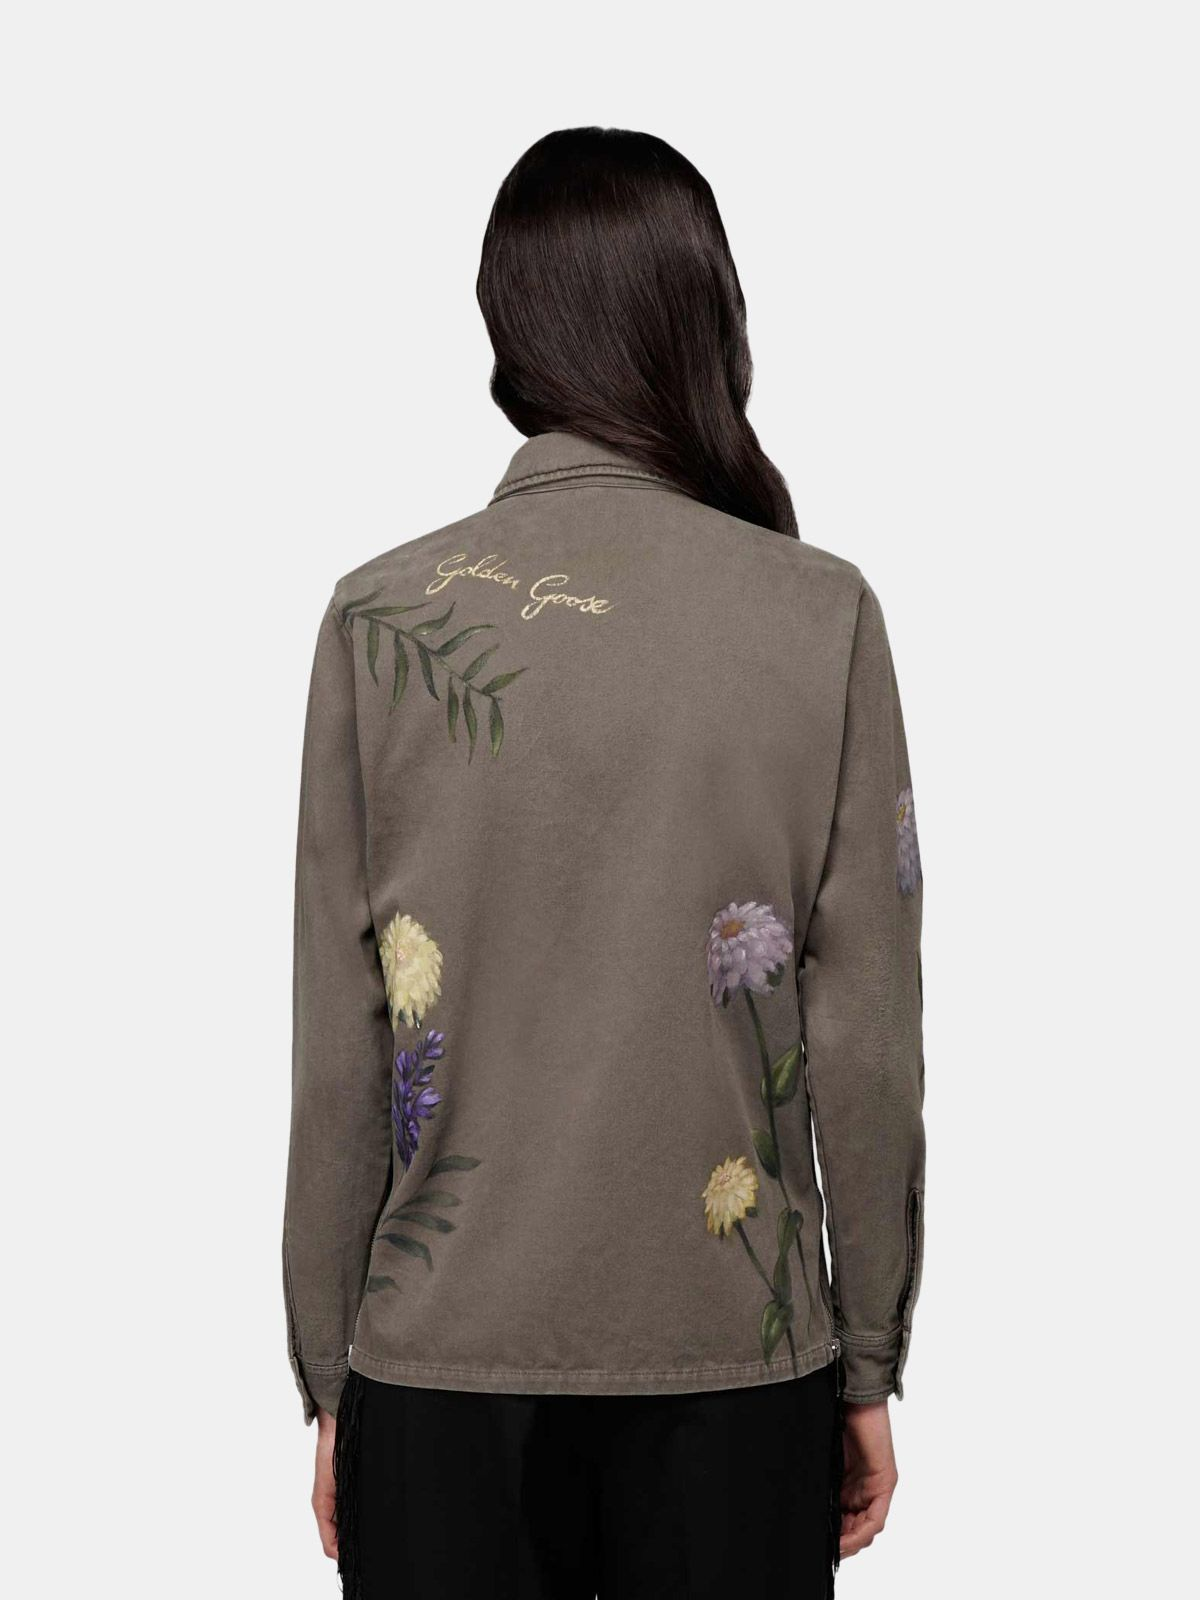 Golden Goose - Layla olive-green jacket with hand-painted flowers in